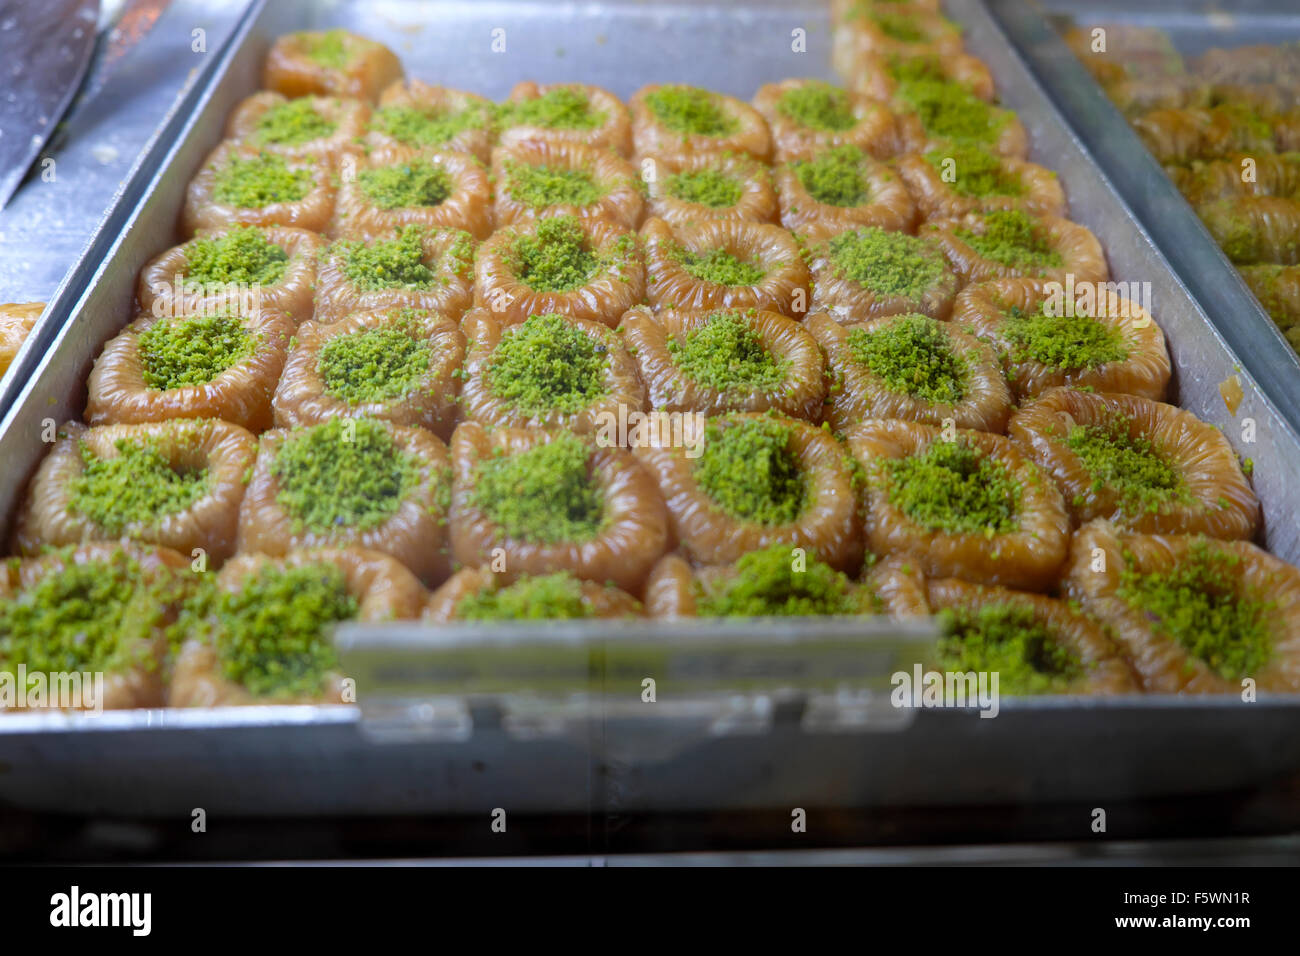 Fig and pistachio sweets at Petek Pastanesi Patisserie Confectioner shop and restaurant in Famagusta North Cyprus - Stock Image